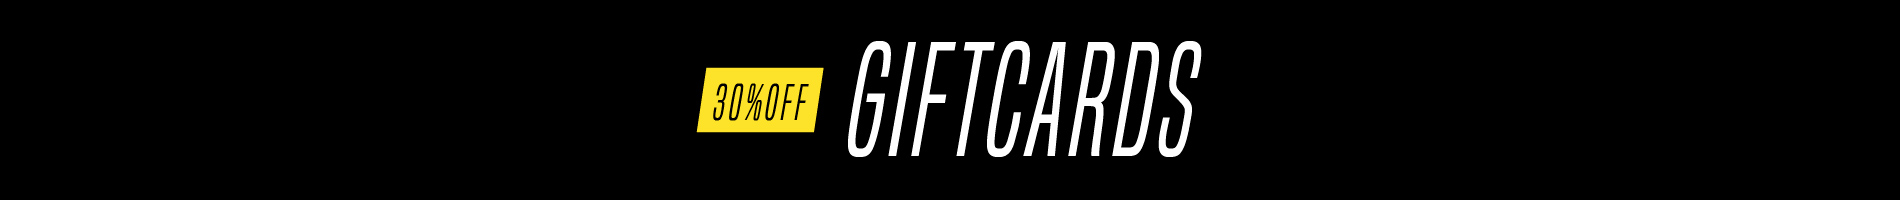 GIFTCARDS - 30% OFF